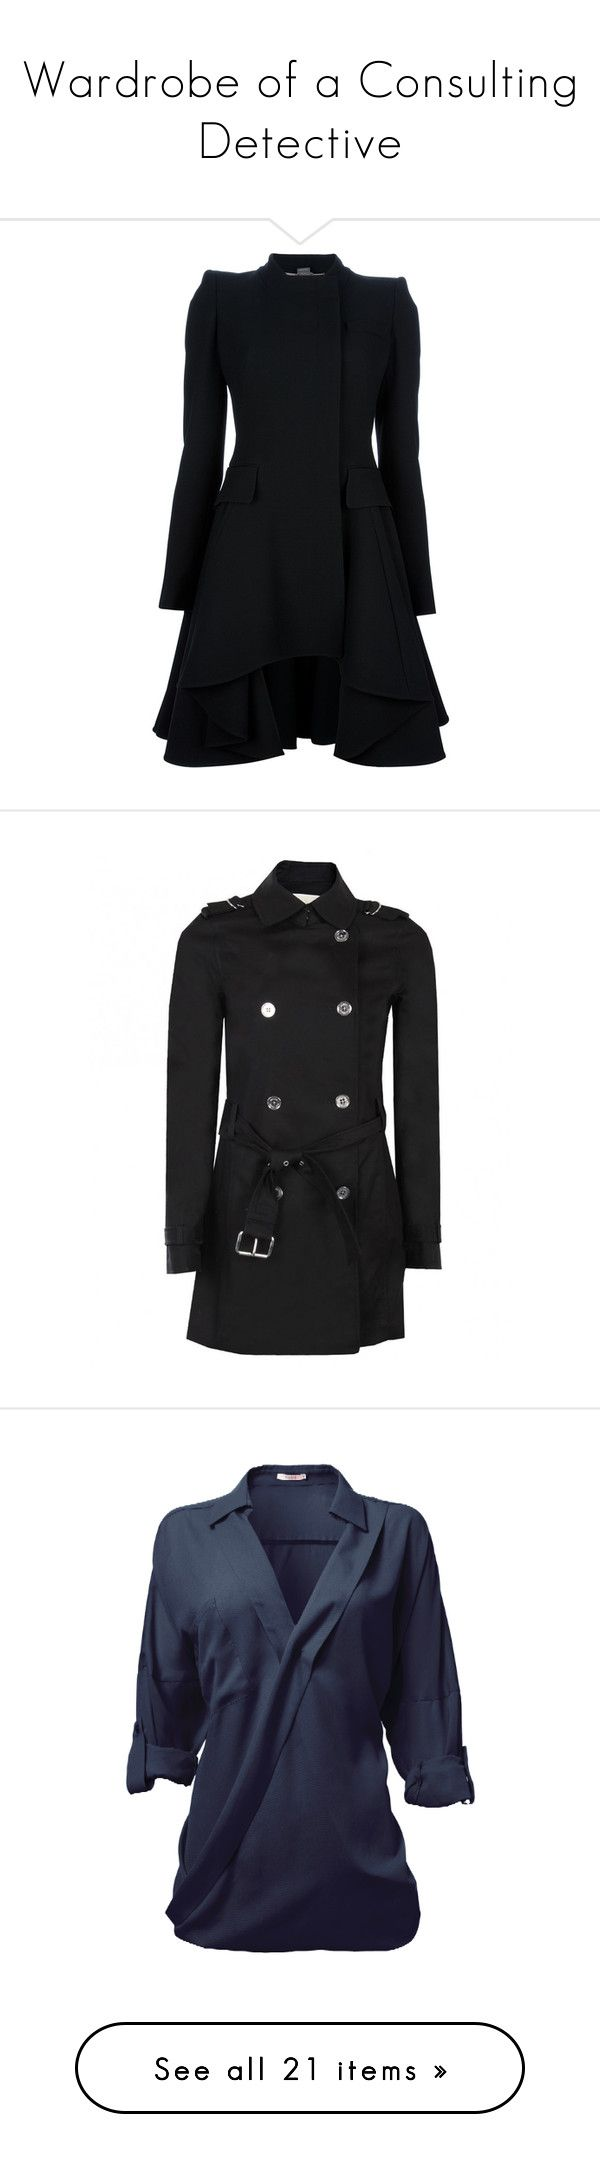 """""""Wardrobe of a Consulting Detective"""" by daughter-of-the-doctor ❤ liked on Polyvore featuring sherlock, art, outerwear, coats, jackets, dresses, casacos, long sleeve coat, alexander mcqueen coat and short coat"""